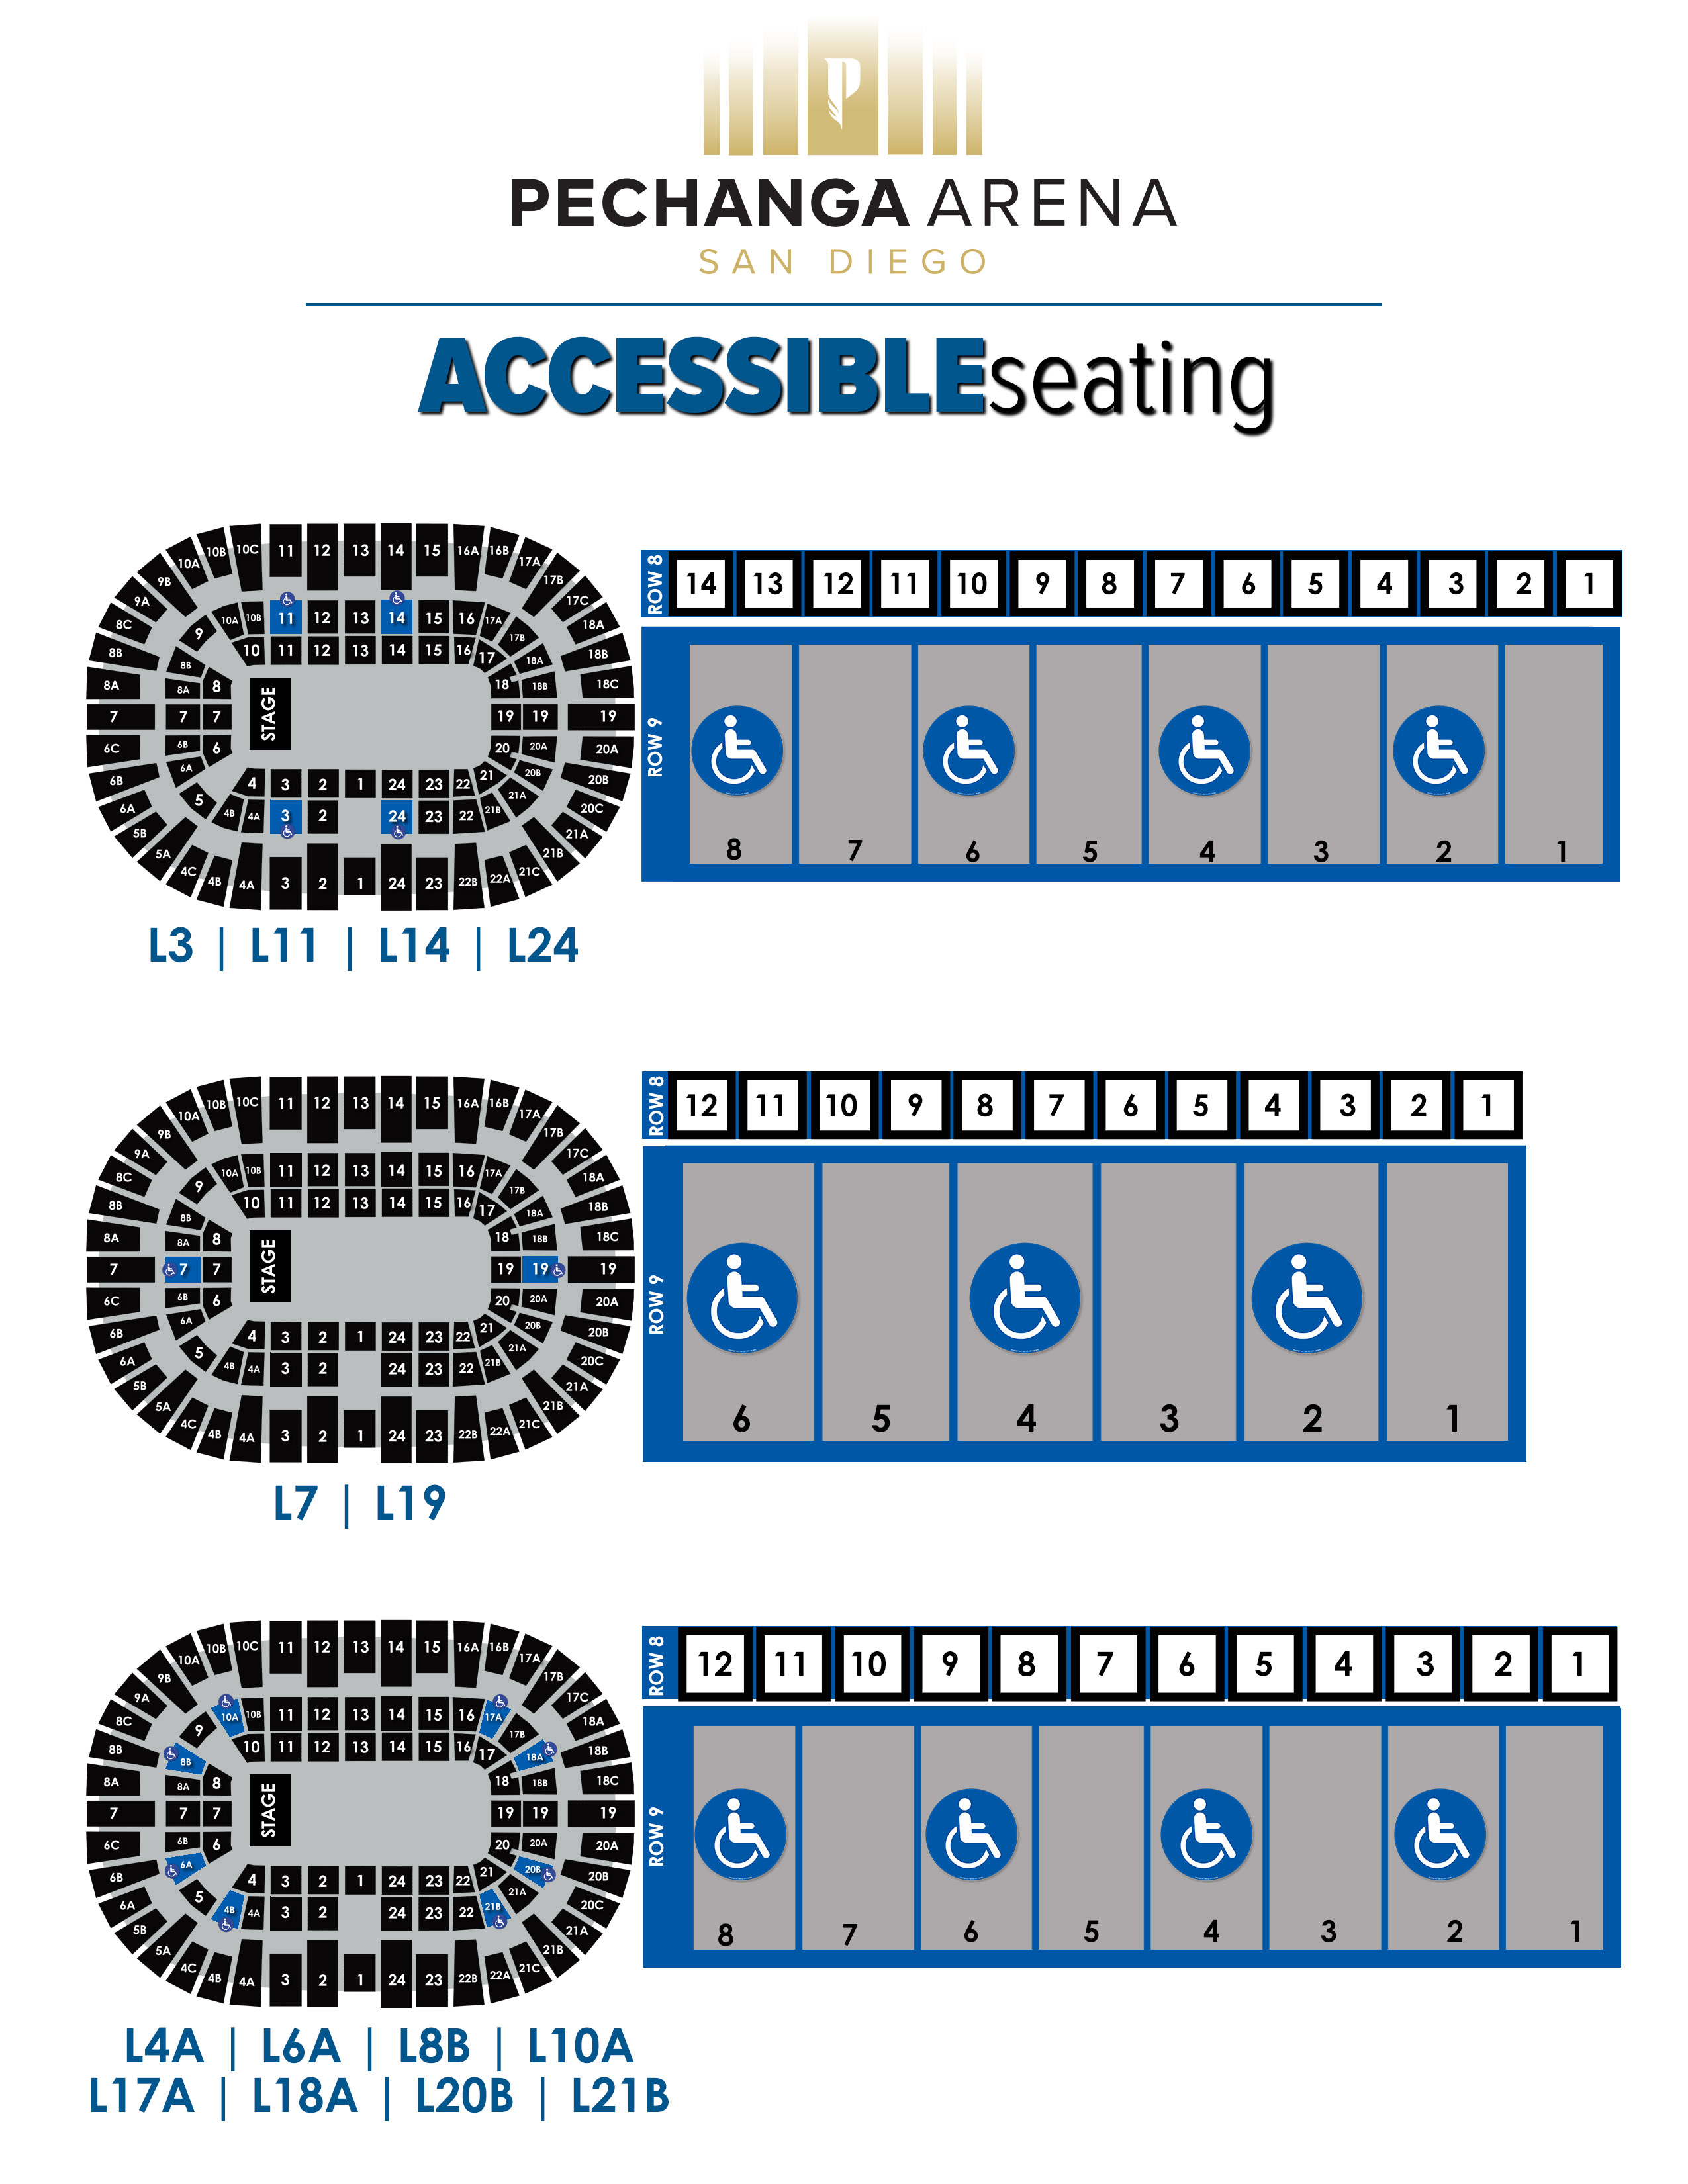 Please here to view the Accessible Seating Layout